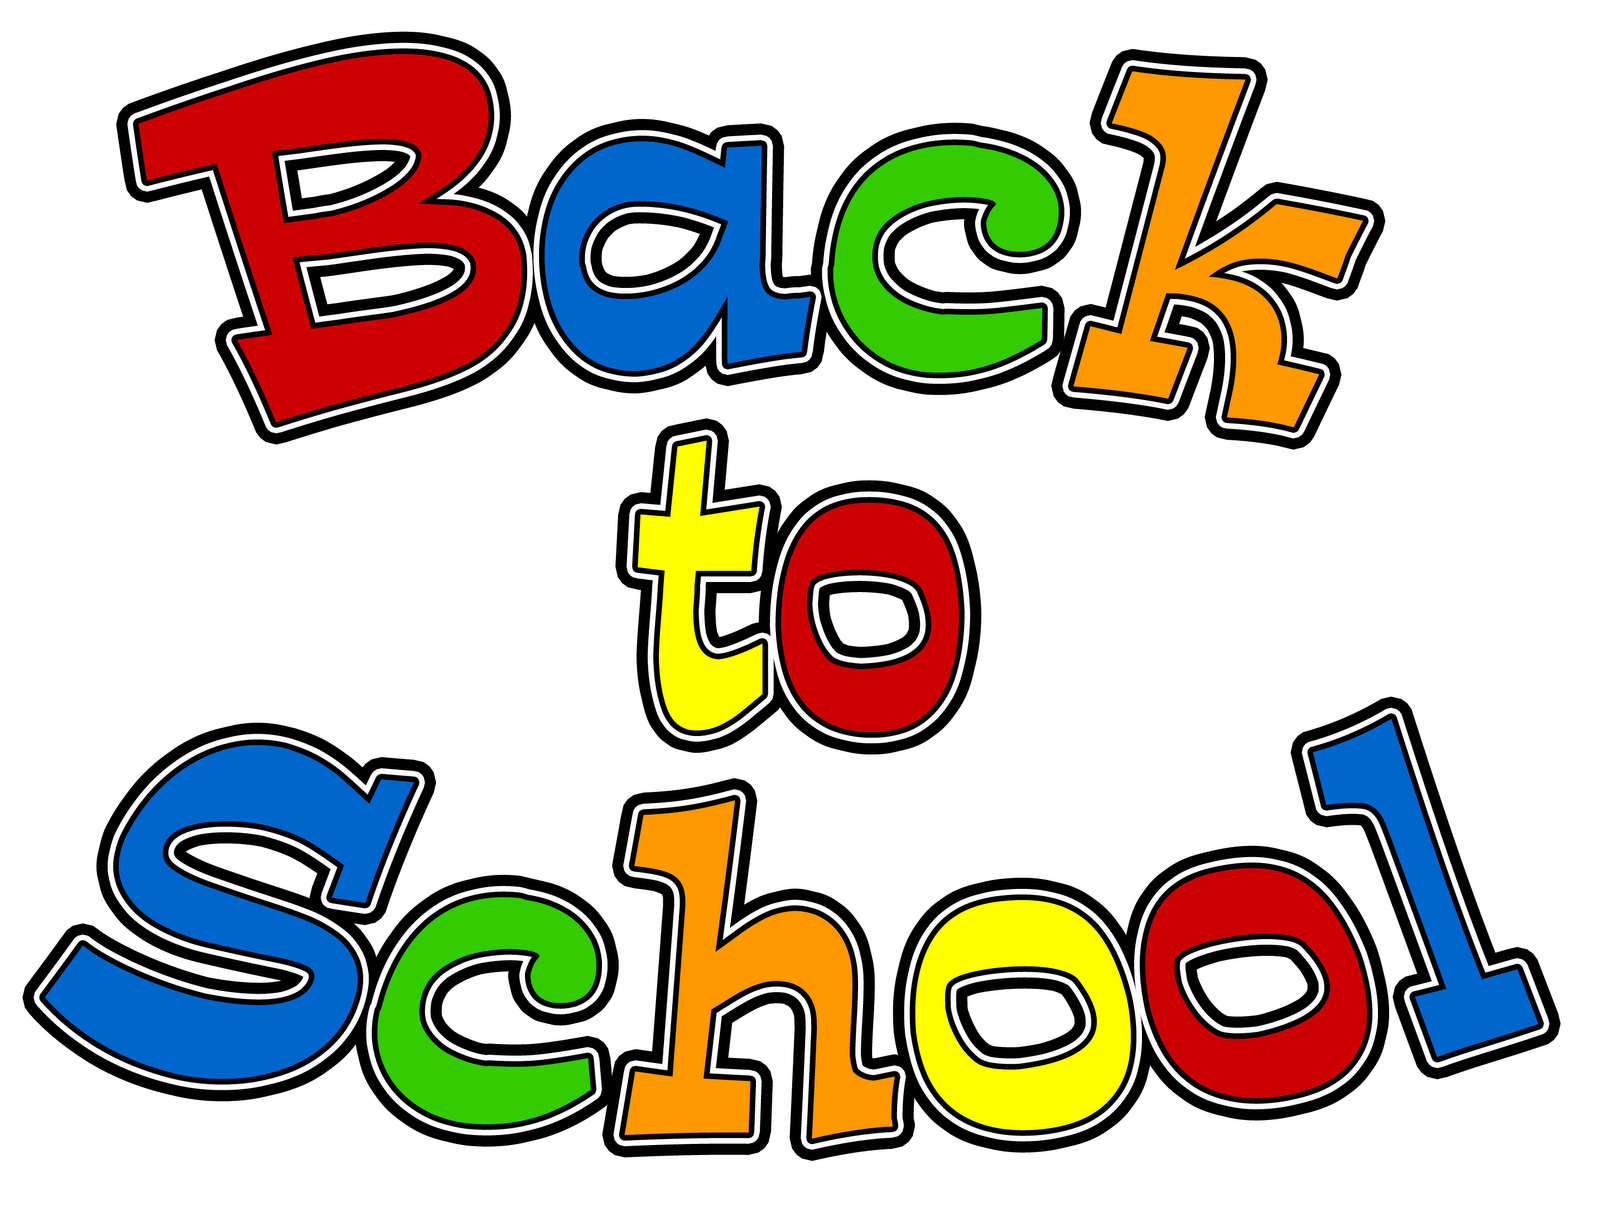 Clipart Welcome Back To School Clipartfo-Clipart welcome back to school clipartfox-3